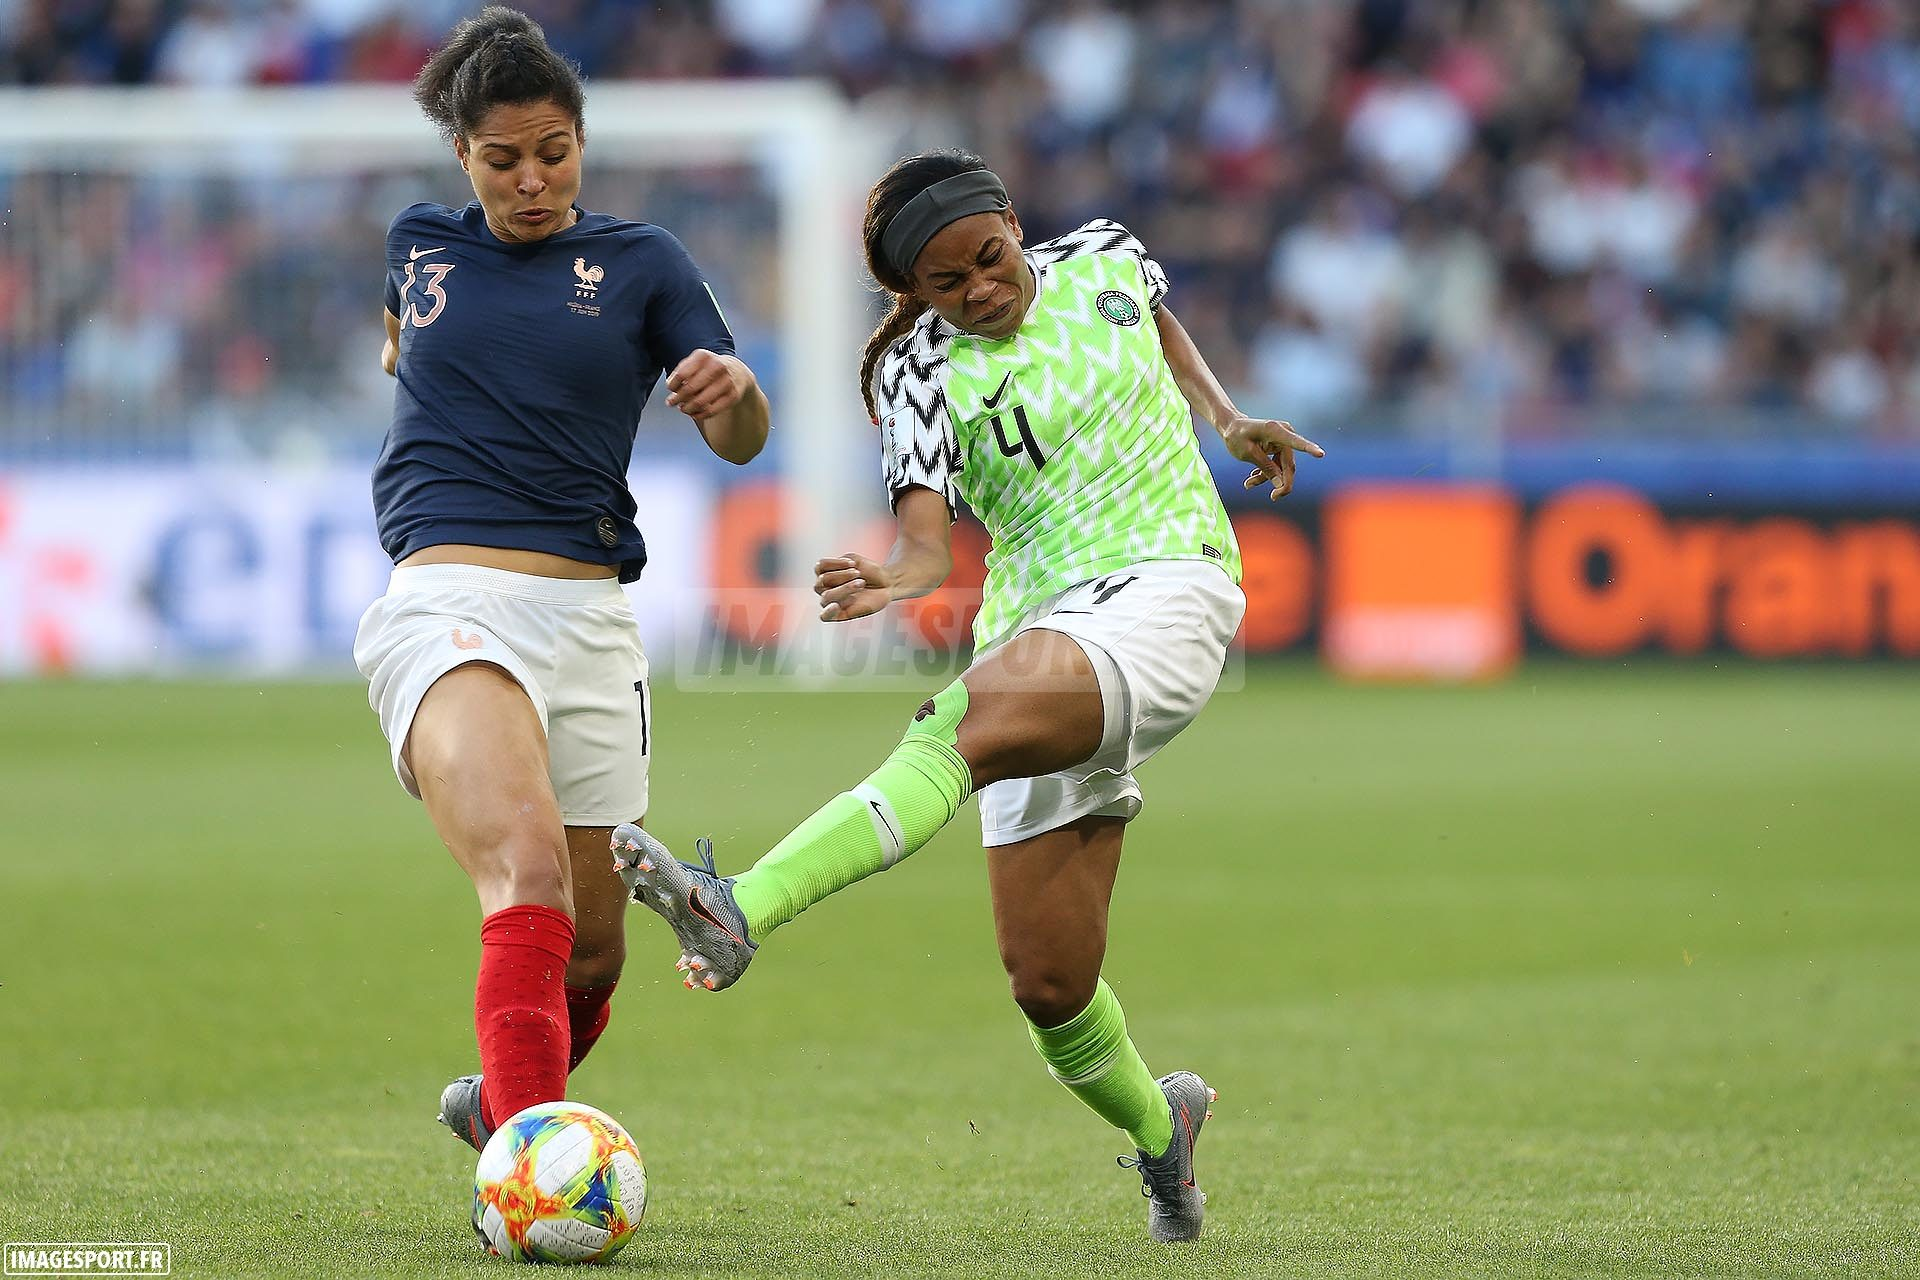 coupe-du-monde-19-nigeria-france_6